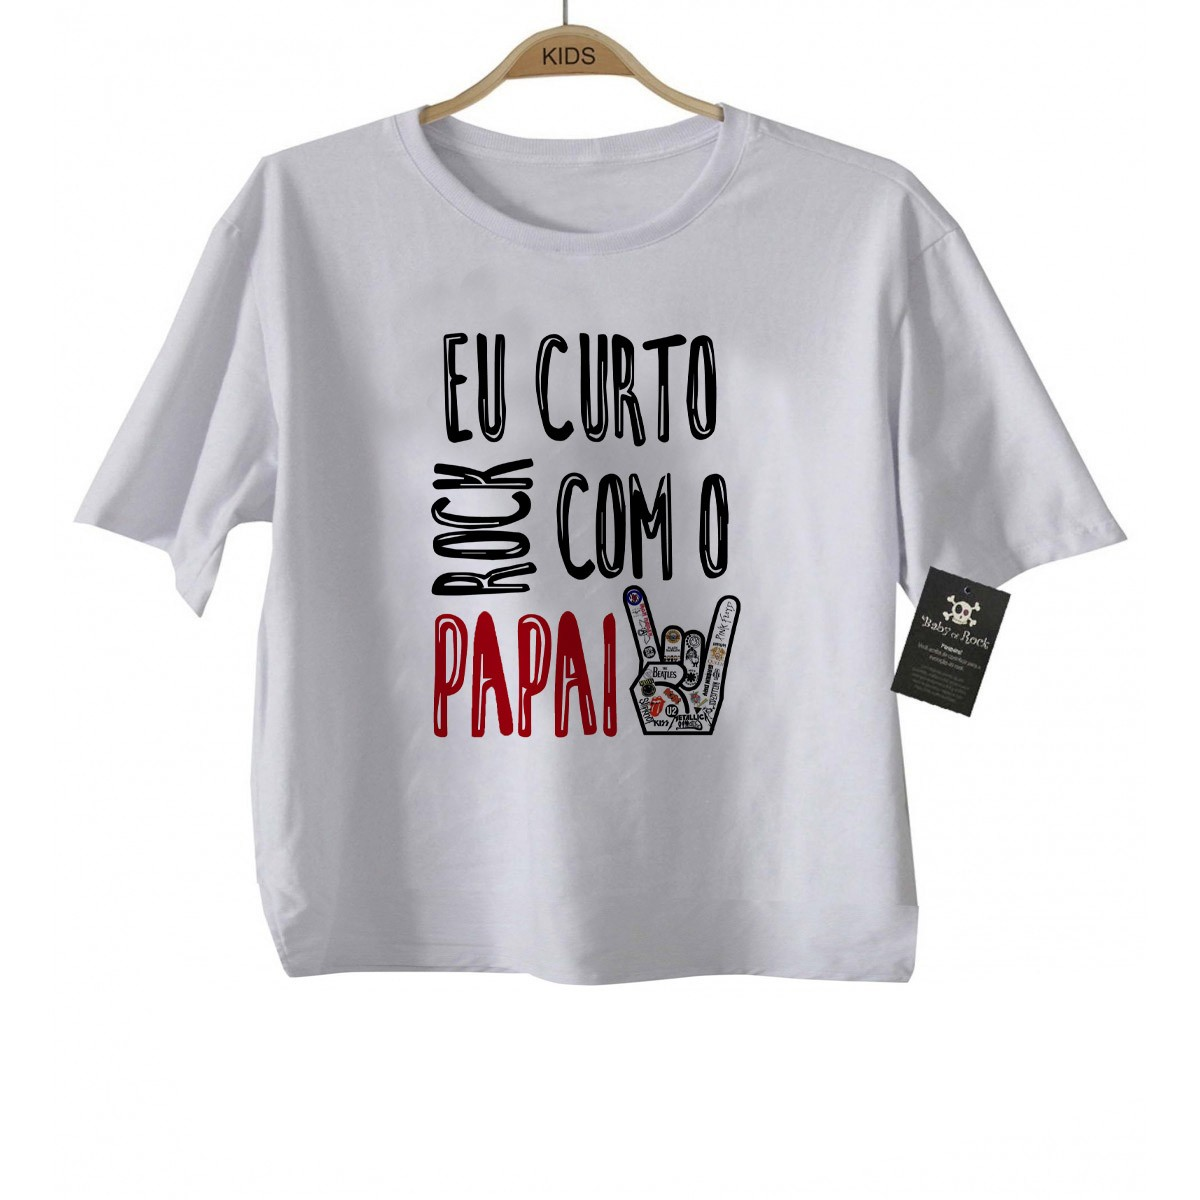 Camiseta de Rock Infantil -  Eu curto Rock com o papai - White  - Baby Monster S/A